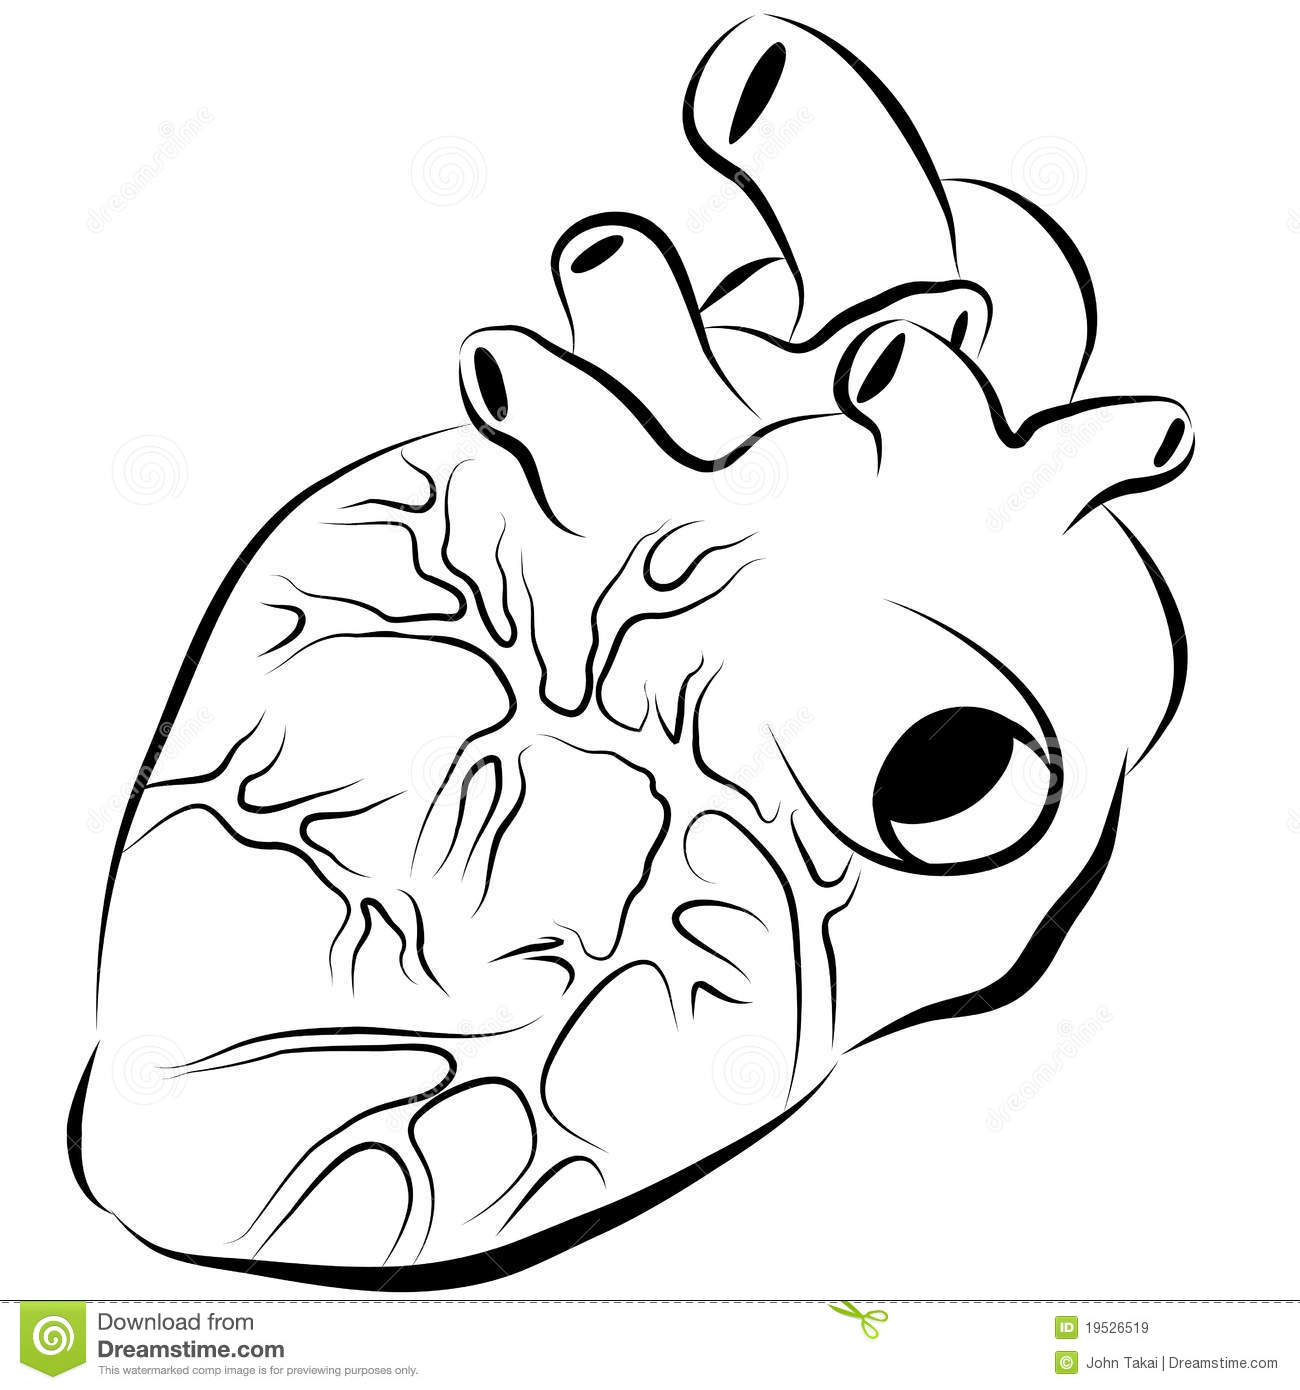 human heart ink drawing royalty free stock images image 19526519